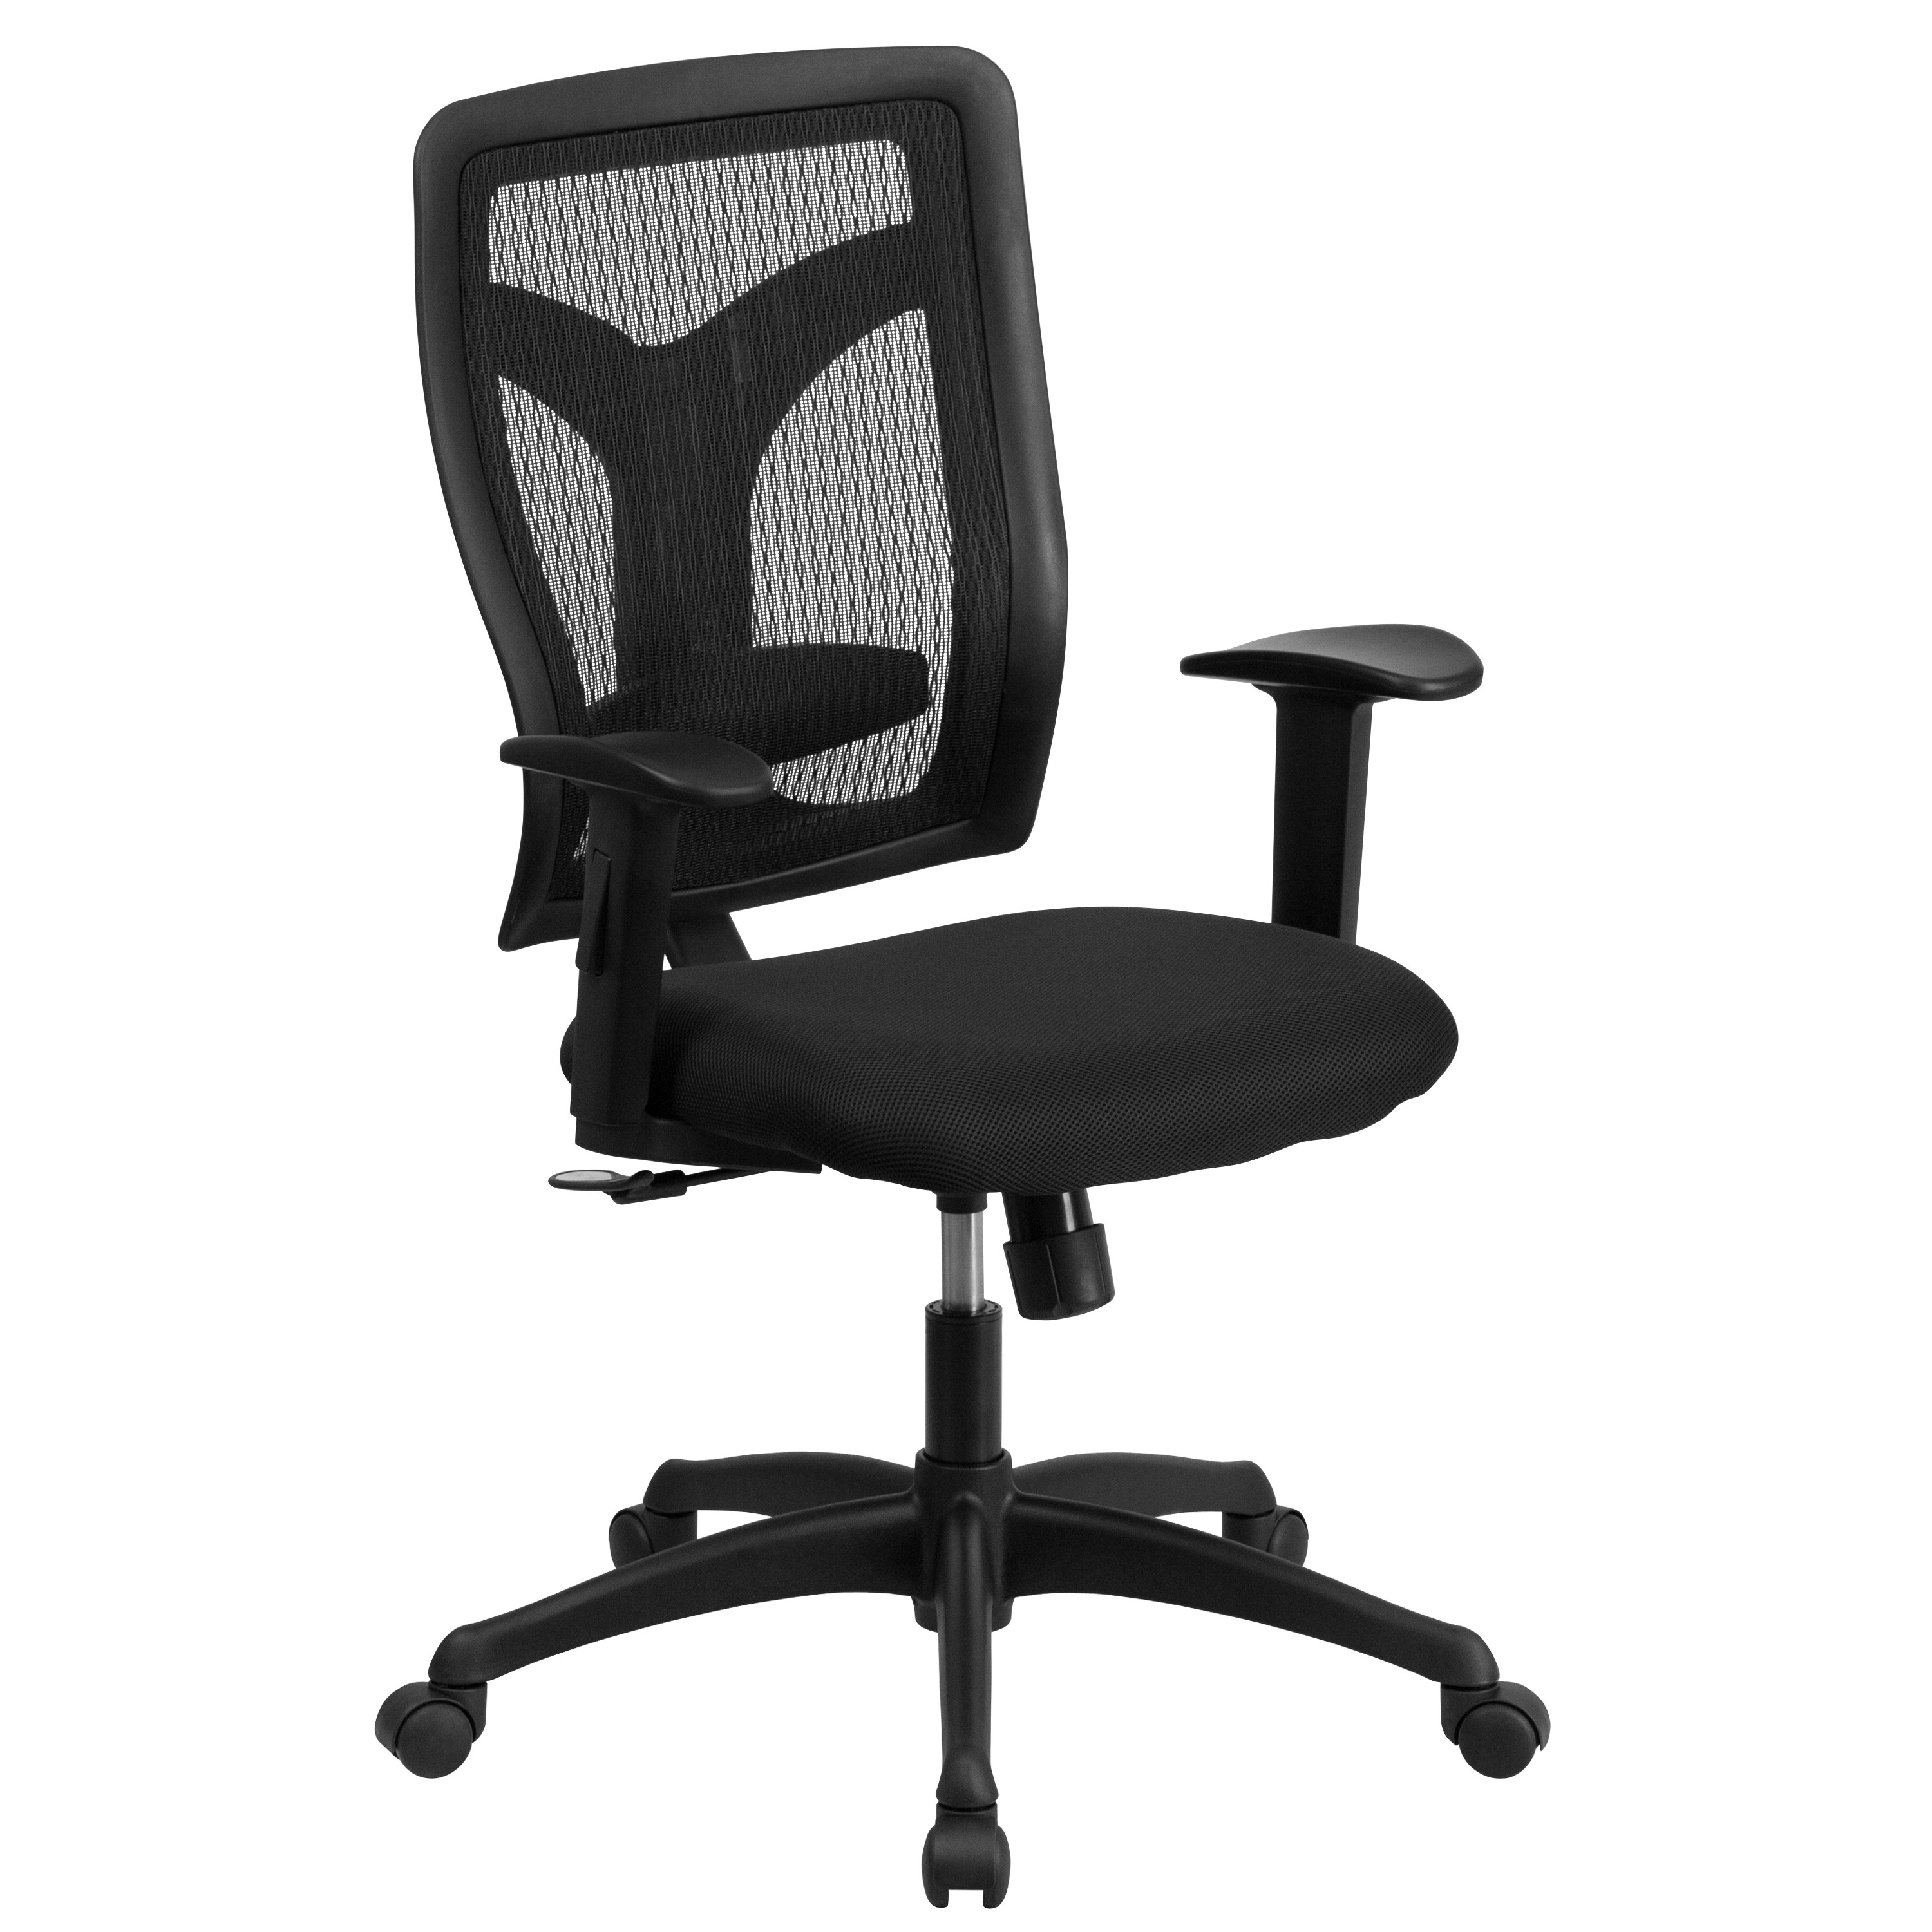 Task Chairs With Arms Galaxy High Back Designer Back Task Chair With Adjustable Height Arms And Padded Fabric Seat